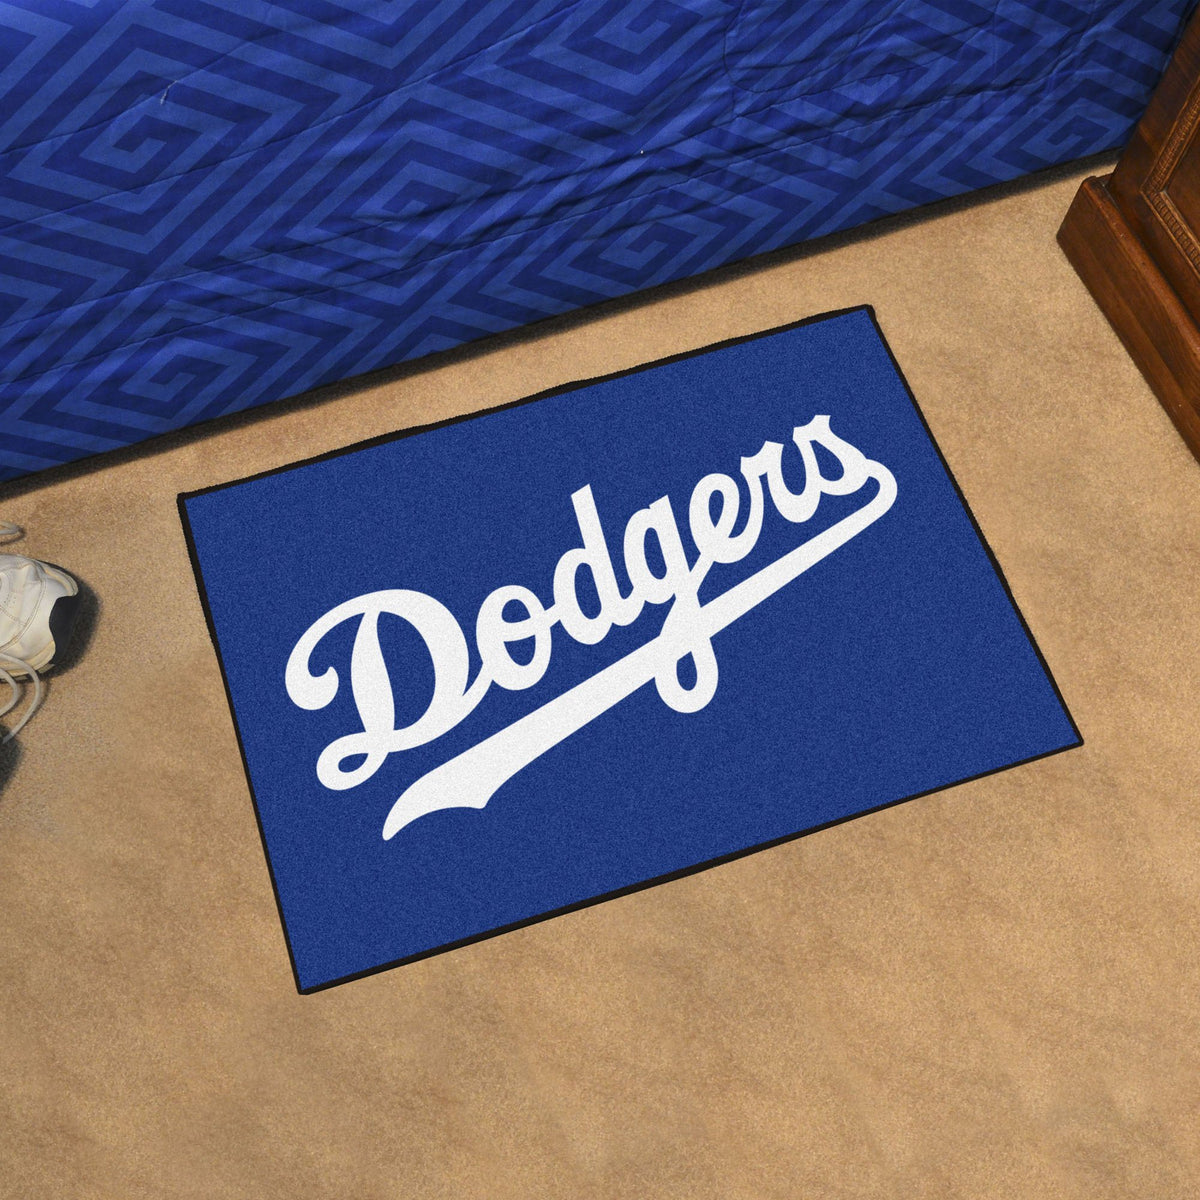 MLB - Starter Mat MLB Mats, Rectangular Mats, Starter Mat, MLB, Home Fan Mats Los Angeles Dodgers 2